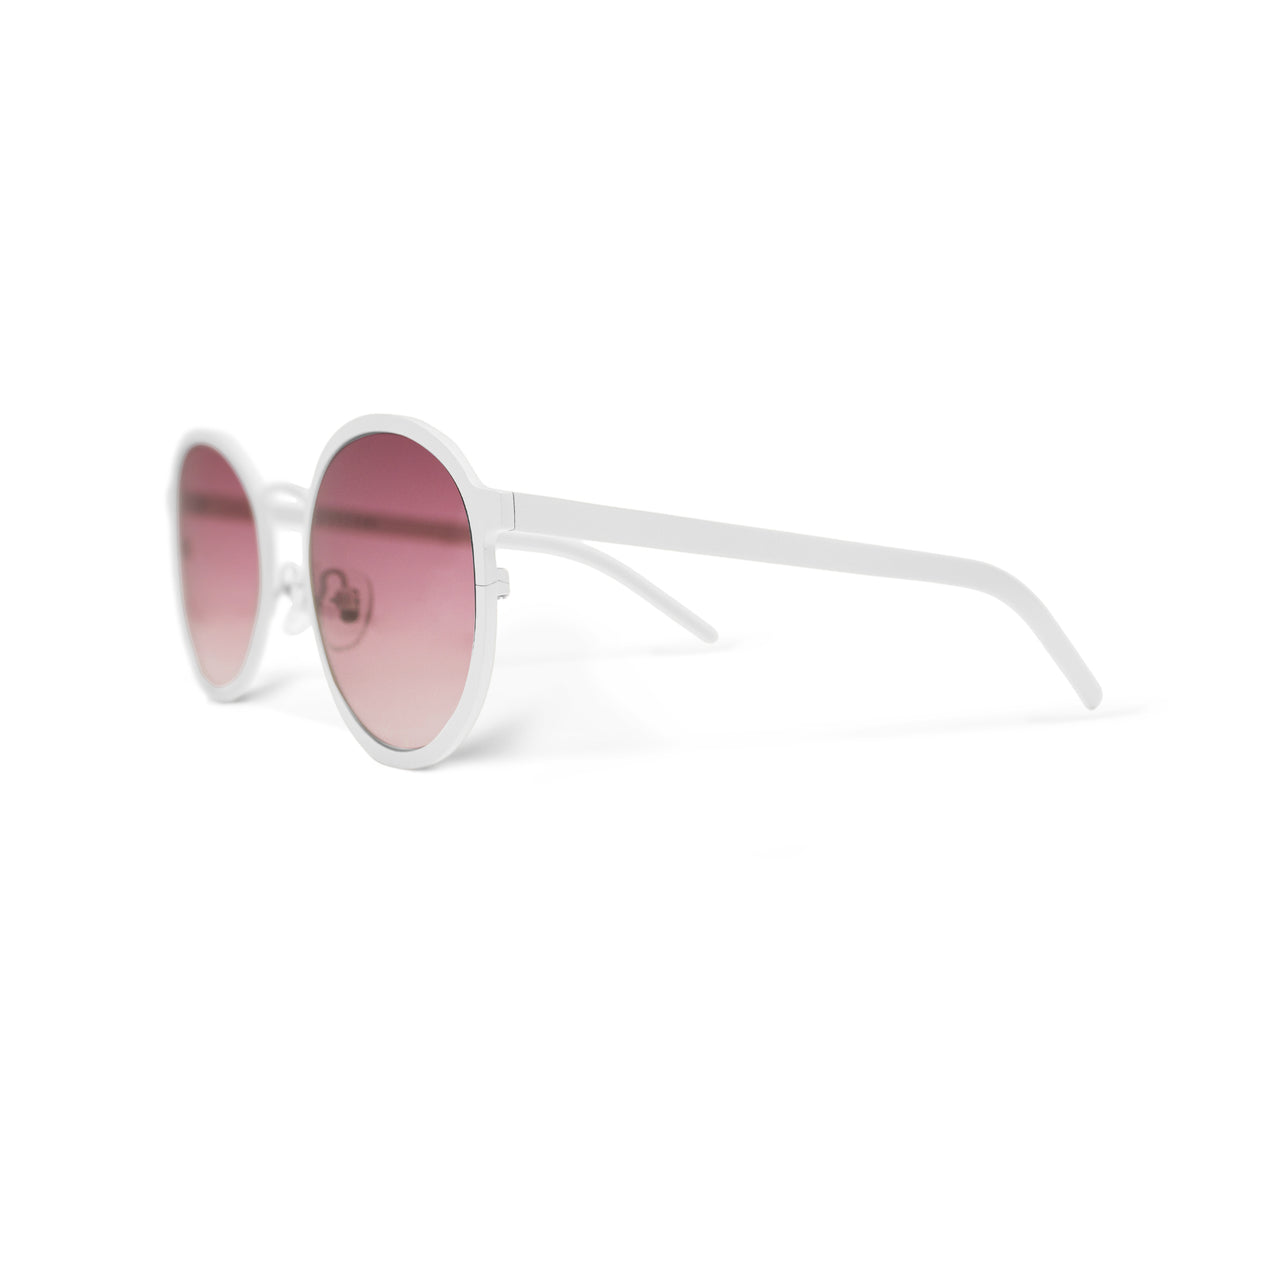 Metal. Porcelain. Blush Lens. - BLYSZAK eyewear eyewear - eyewear, optical, sunglasses